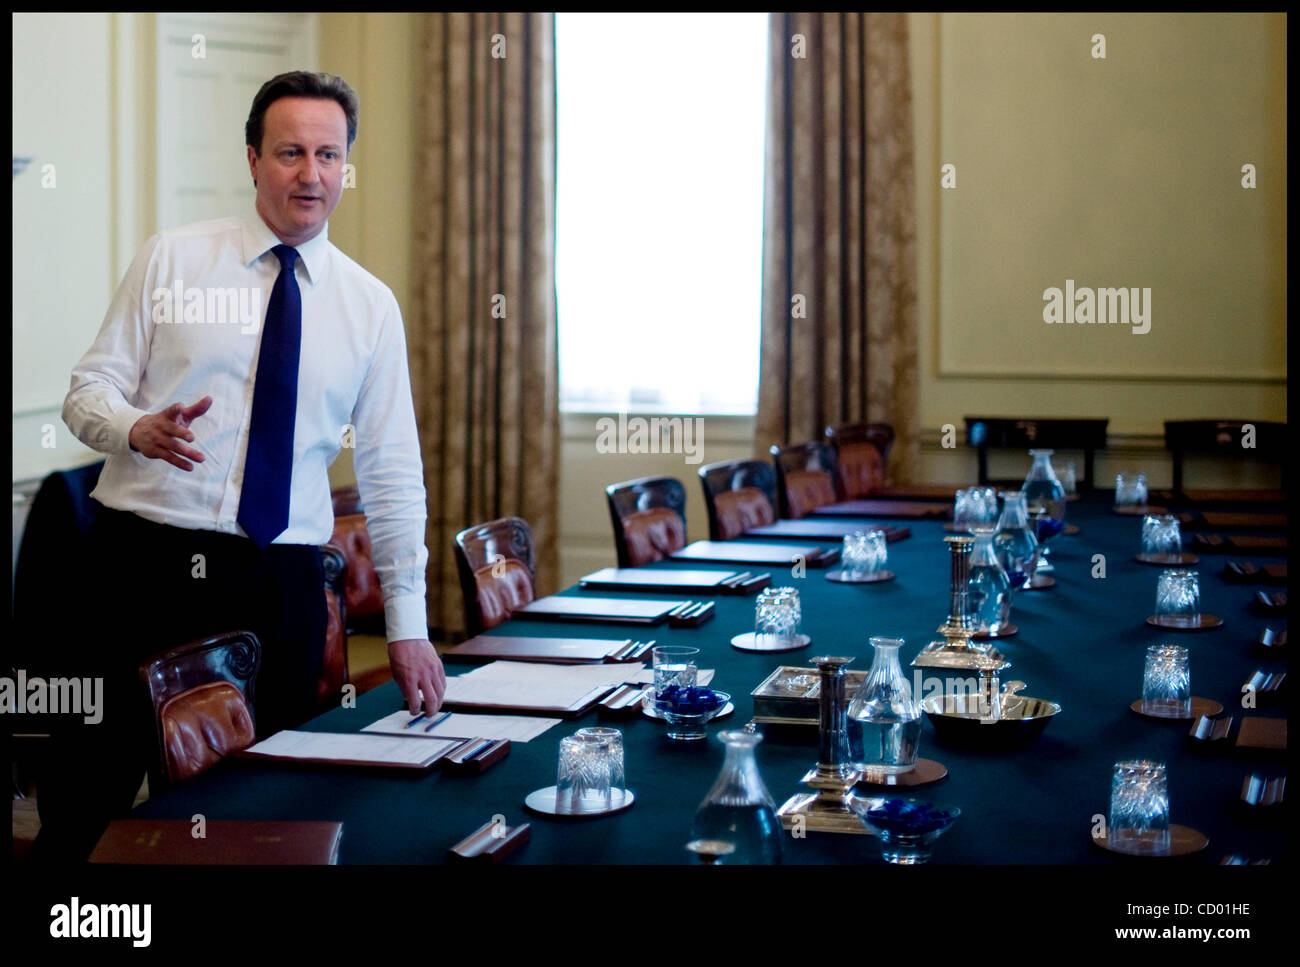 May 12 2010 london uk the prime minister david cameron working stock photo royalty free - Office of prime minister uk ...